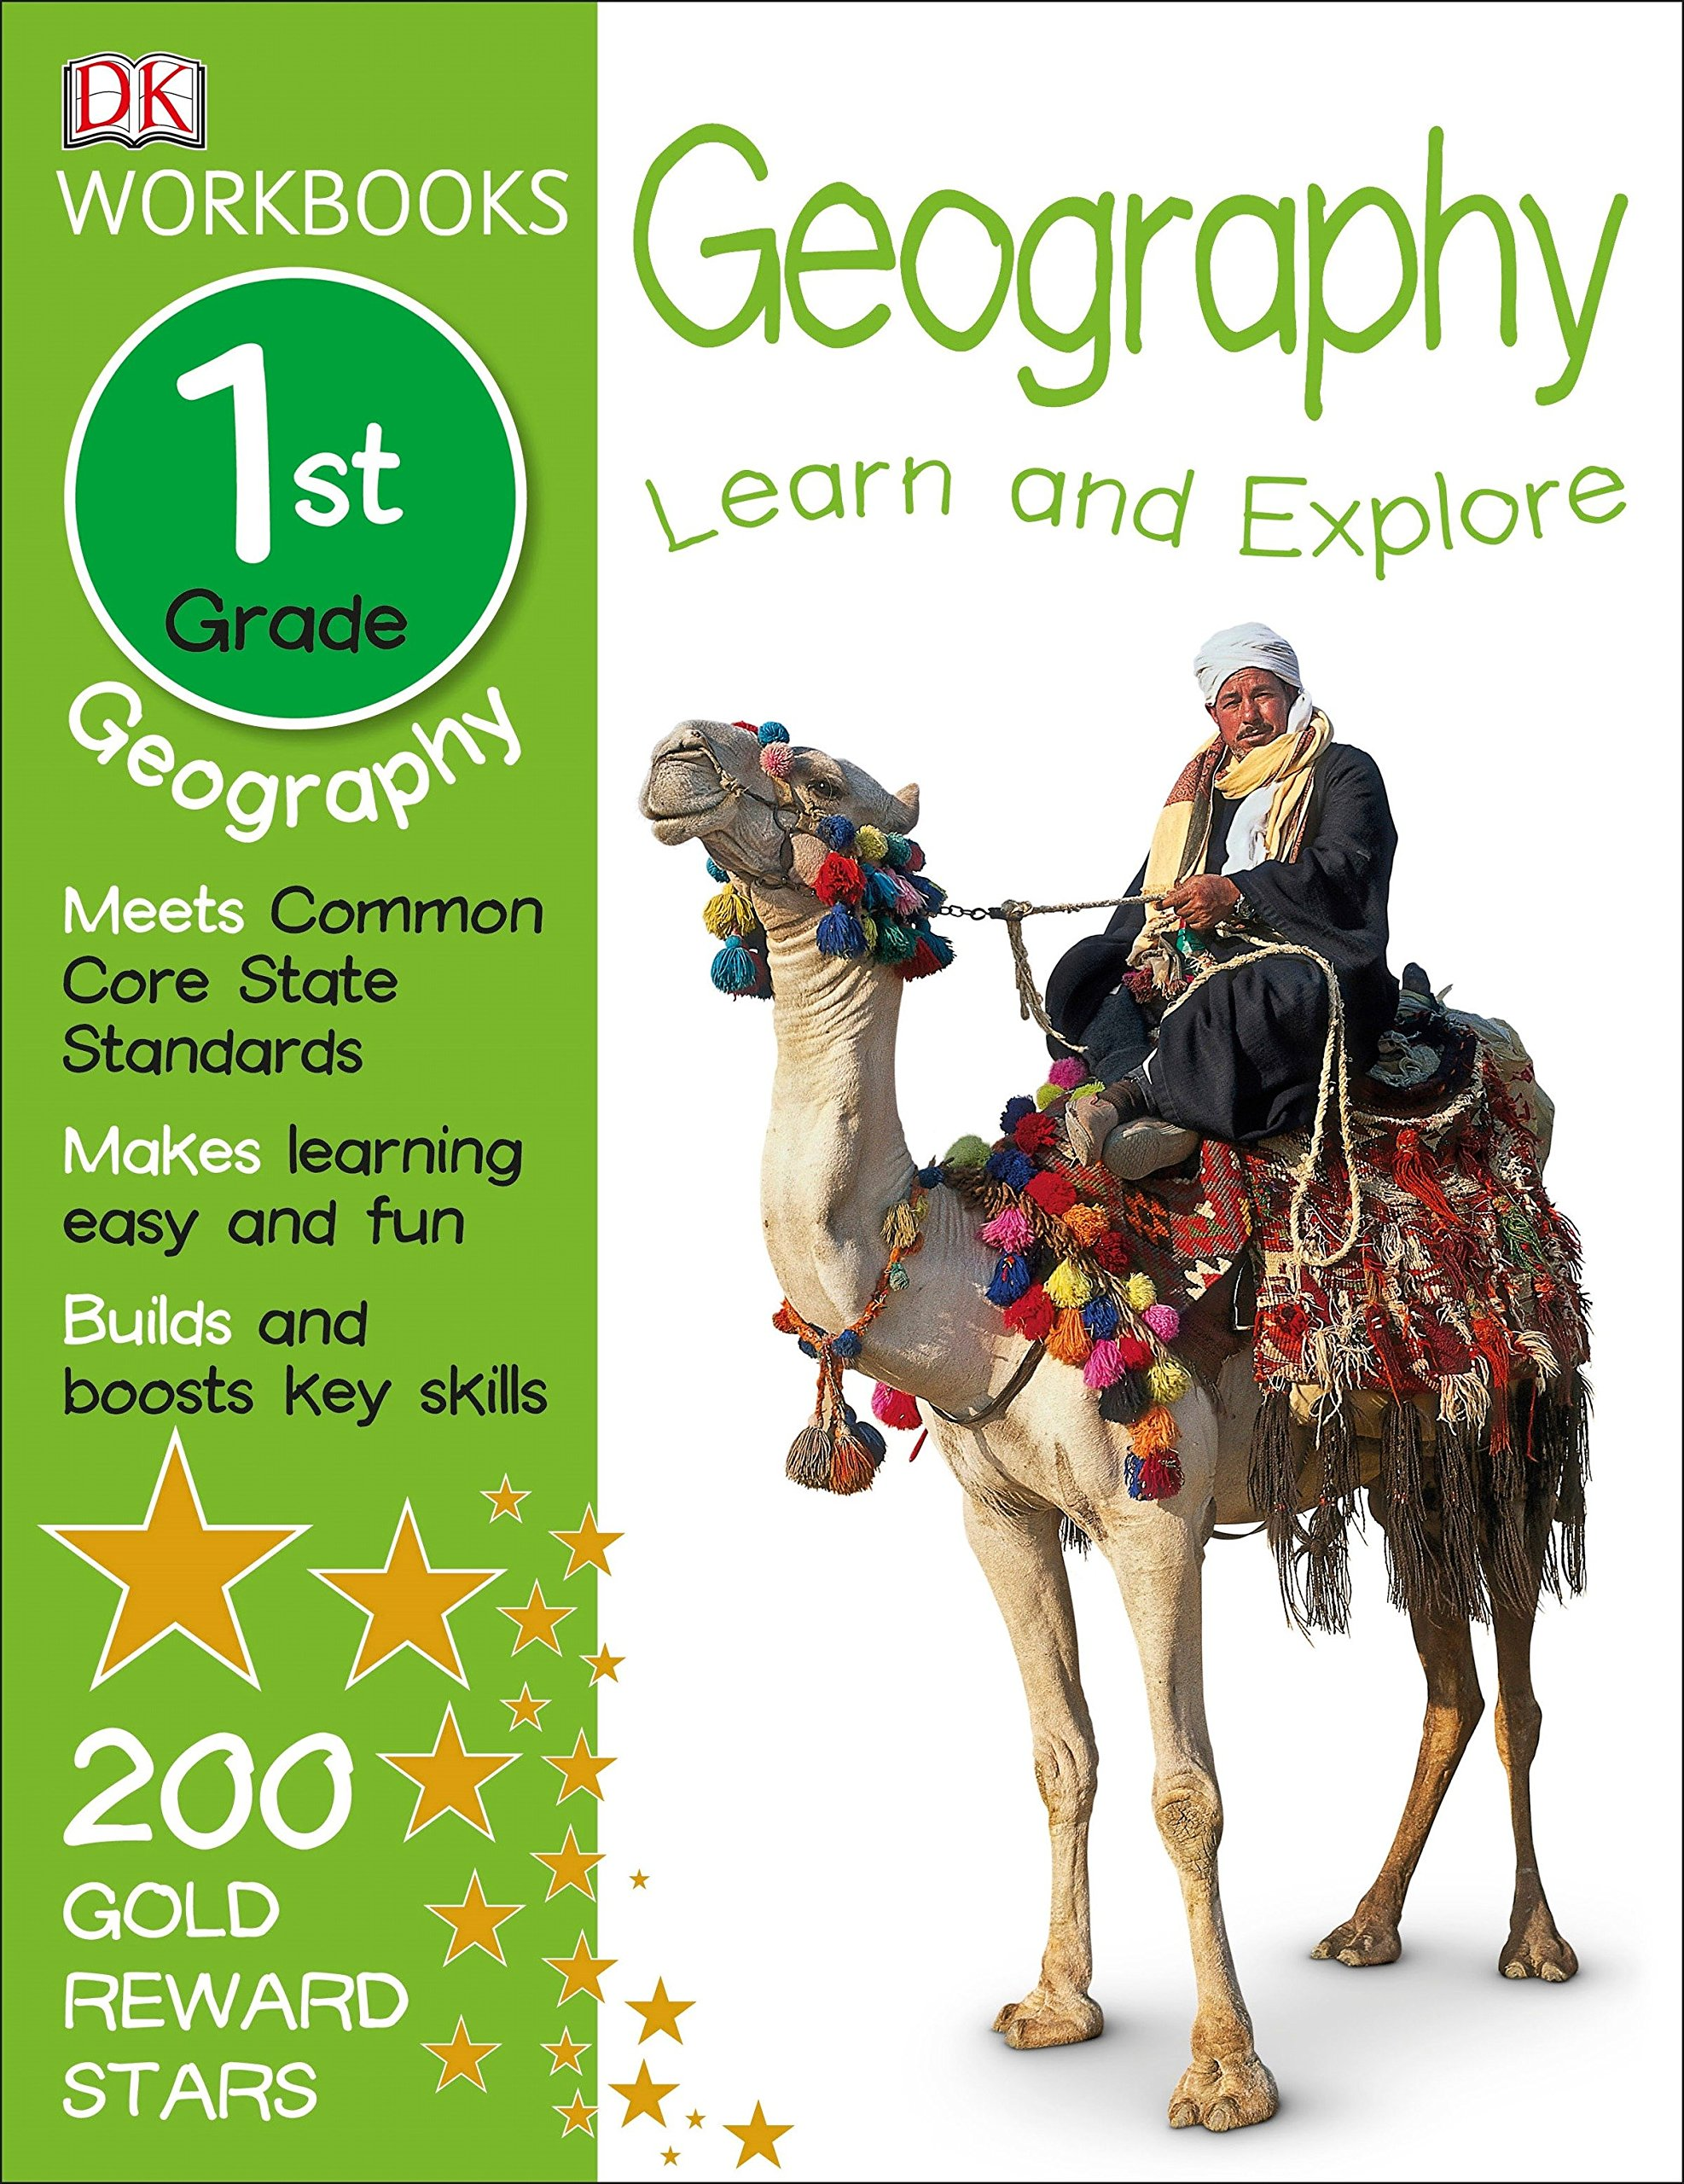 DK Workbooks: Geography, First Grade: Learn and Explore pdf